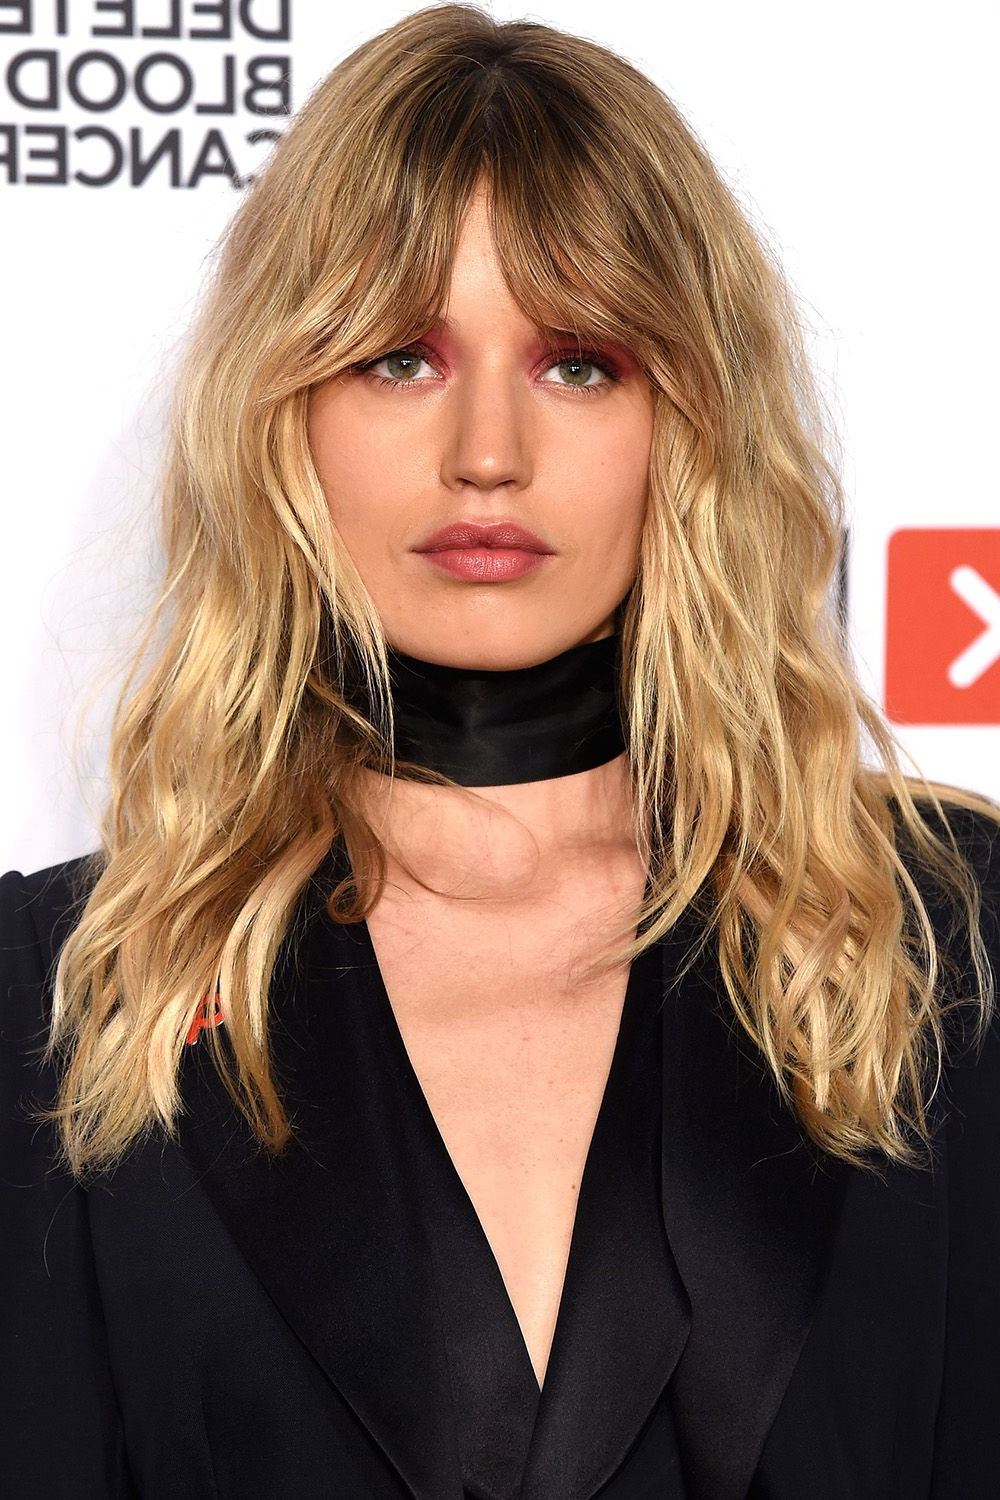 40 Best Medium Hairstyles – Celebrities With Shoulder Length Haircuts Within Most Up To Date Medium Haircuts With Full Bangs (View 5 of 20)